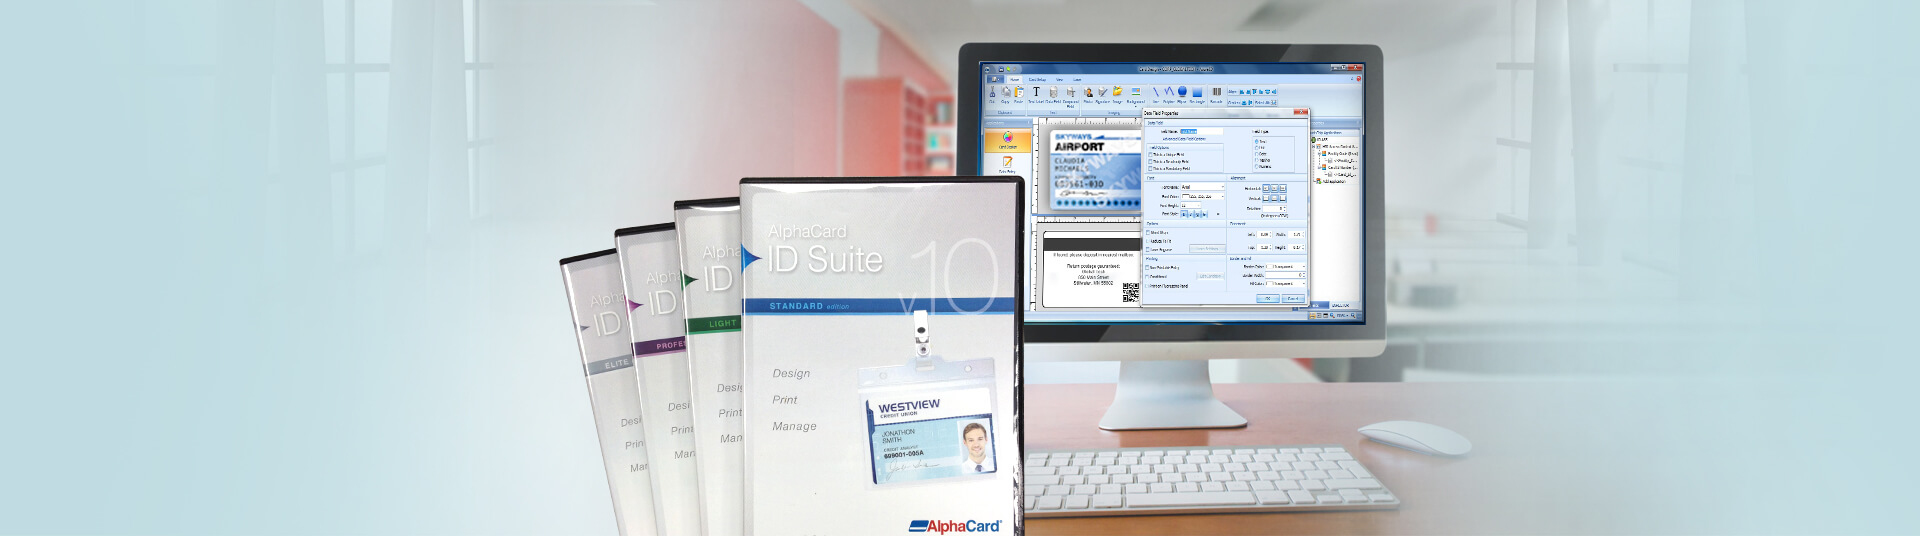 Identification Card Software Security